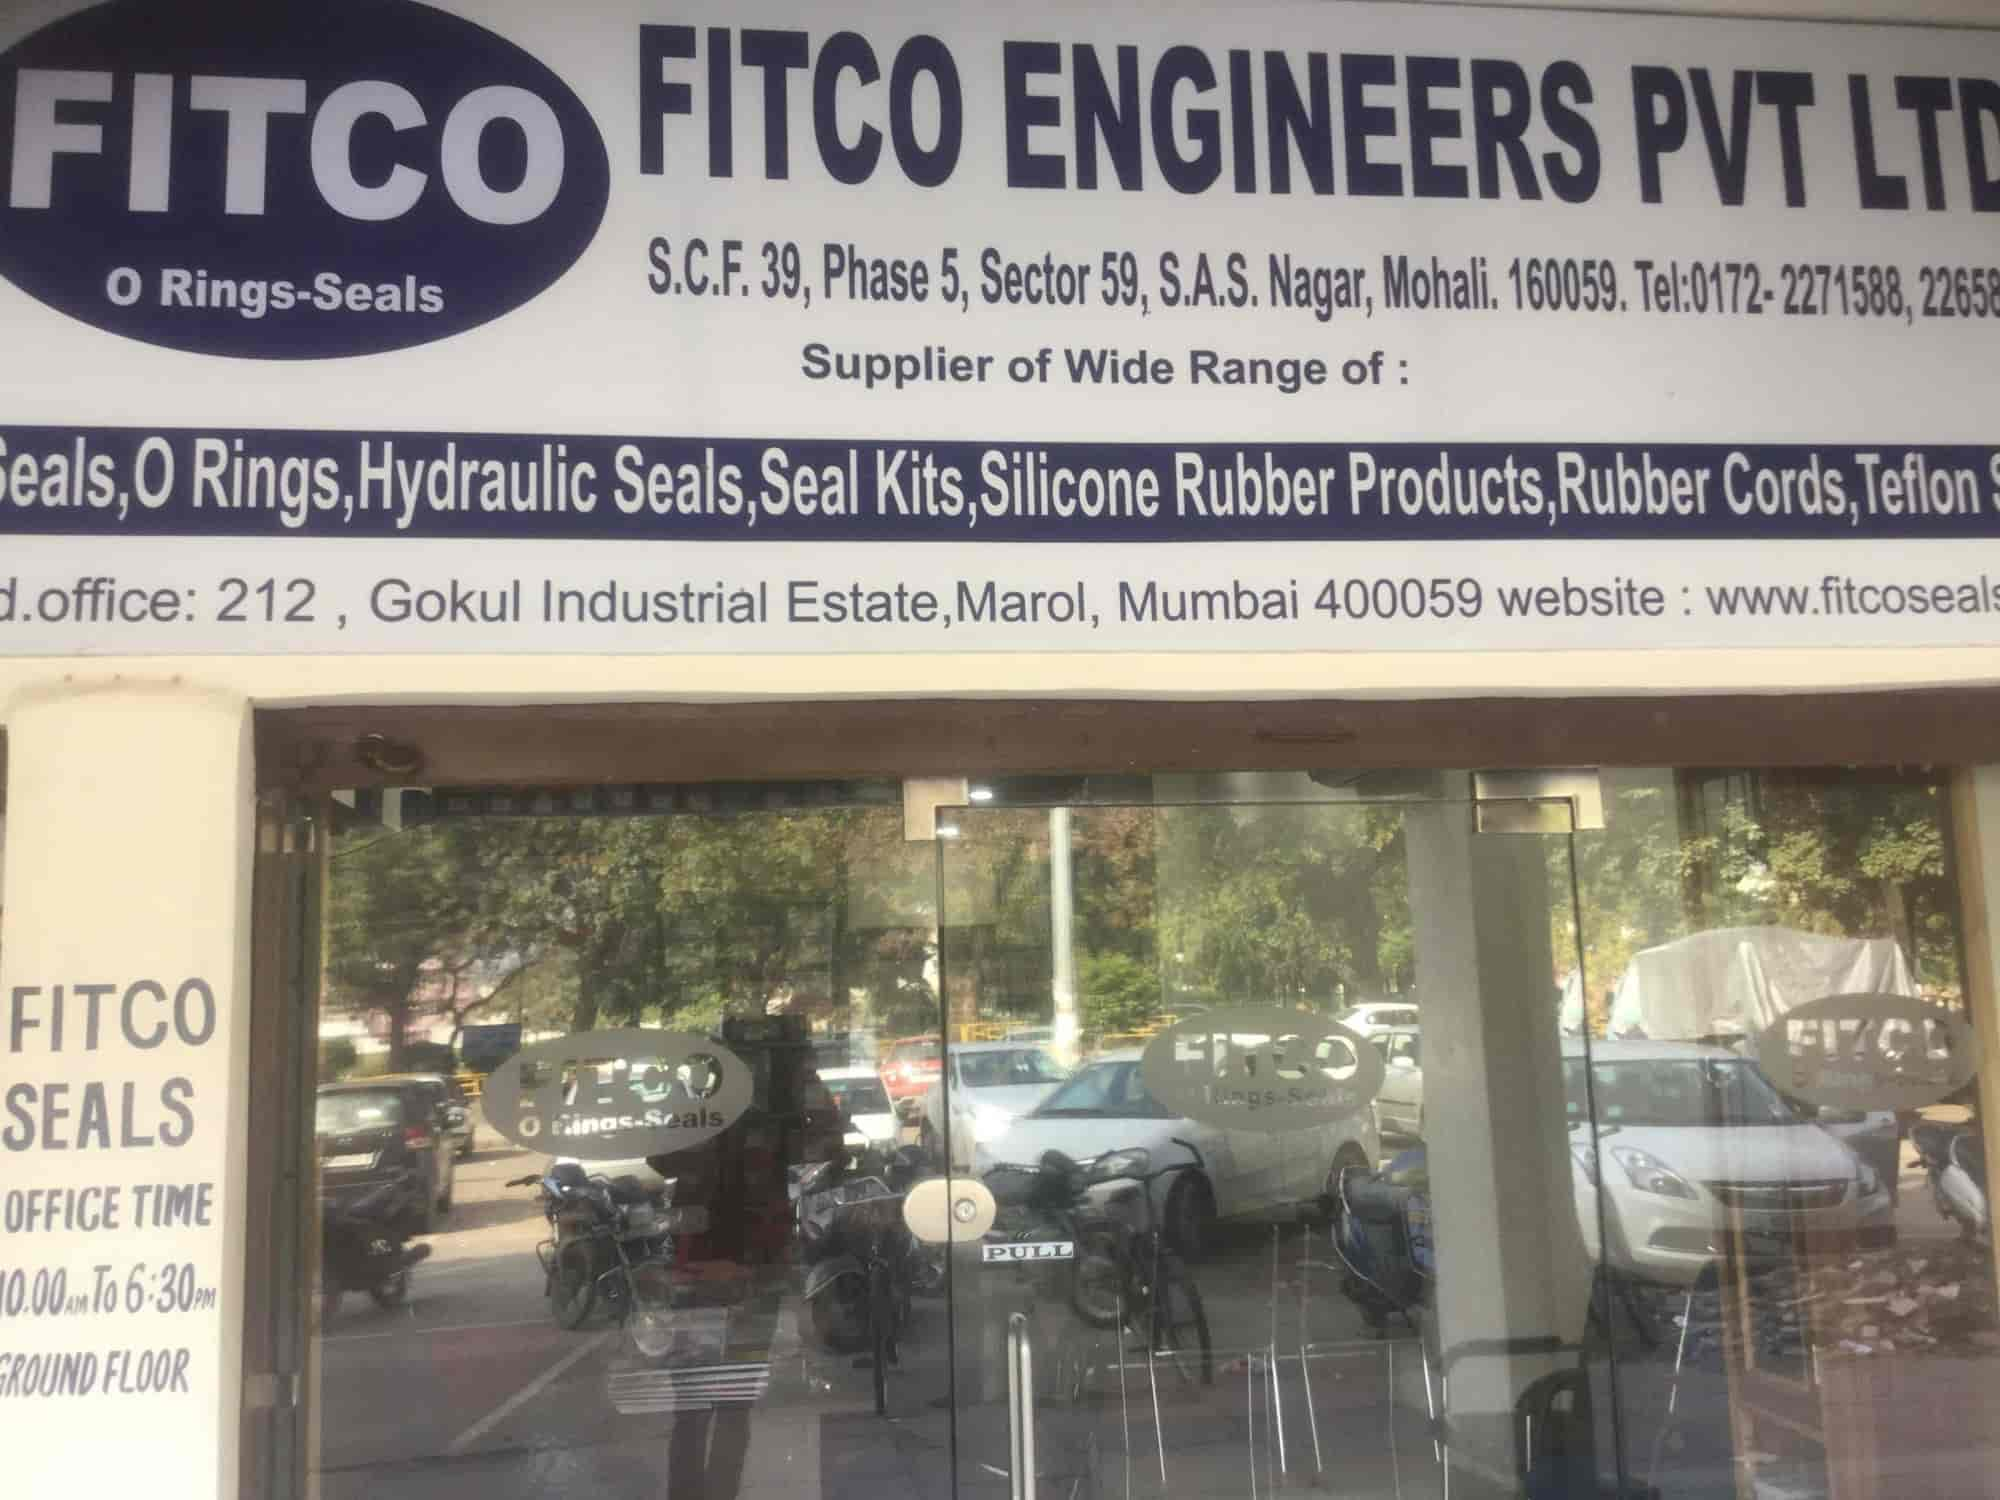 Fitco Engineers Pvt Ltd, Chandigarh Sector 59 Phase 5 - Oil